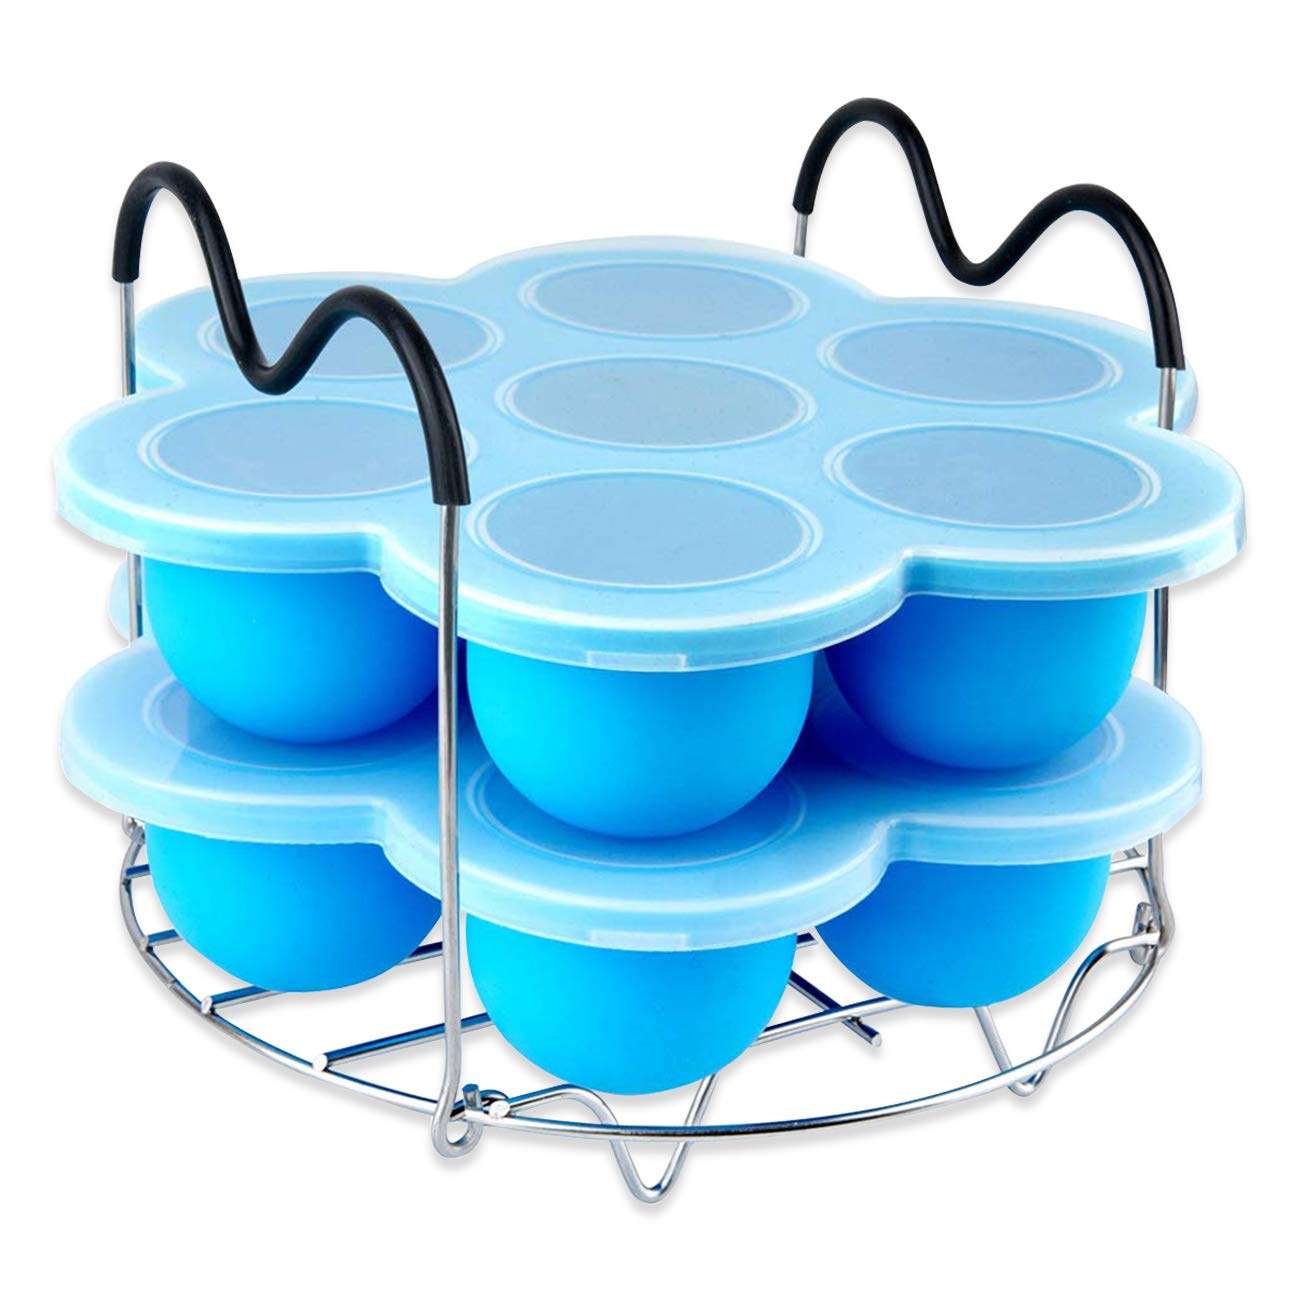 Bamyko Silicone Egg Bites Molds and Egg Steamer Rack for Instant Pot Accessories - Fit Instant Pot 5,6,8 qt Pressure Cooker Reusable Storage Container Freezer Trays for Baby Food